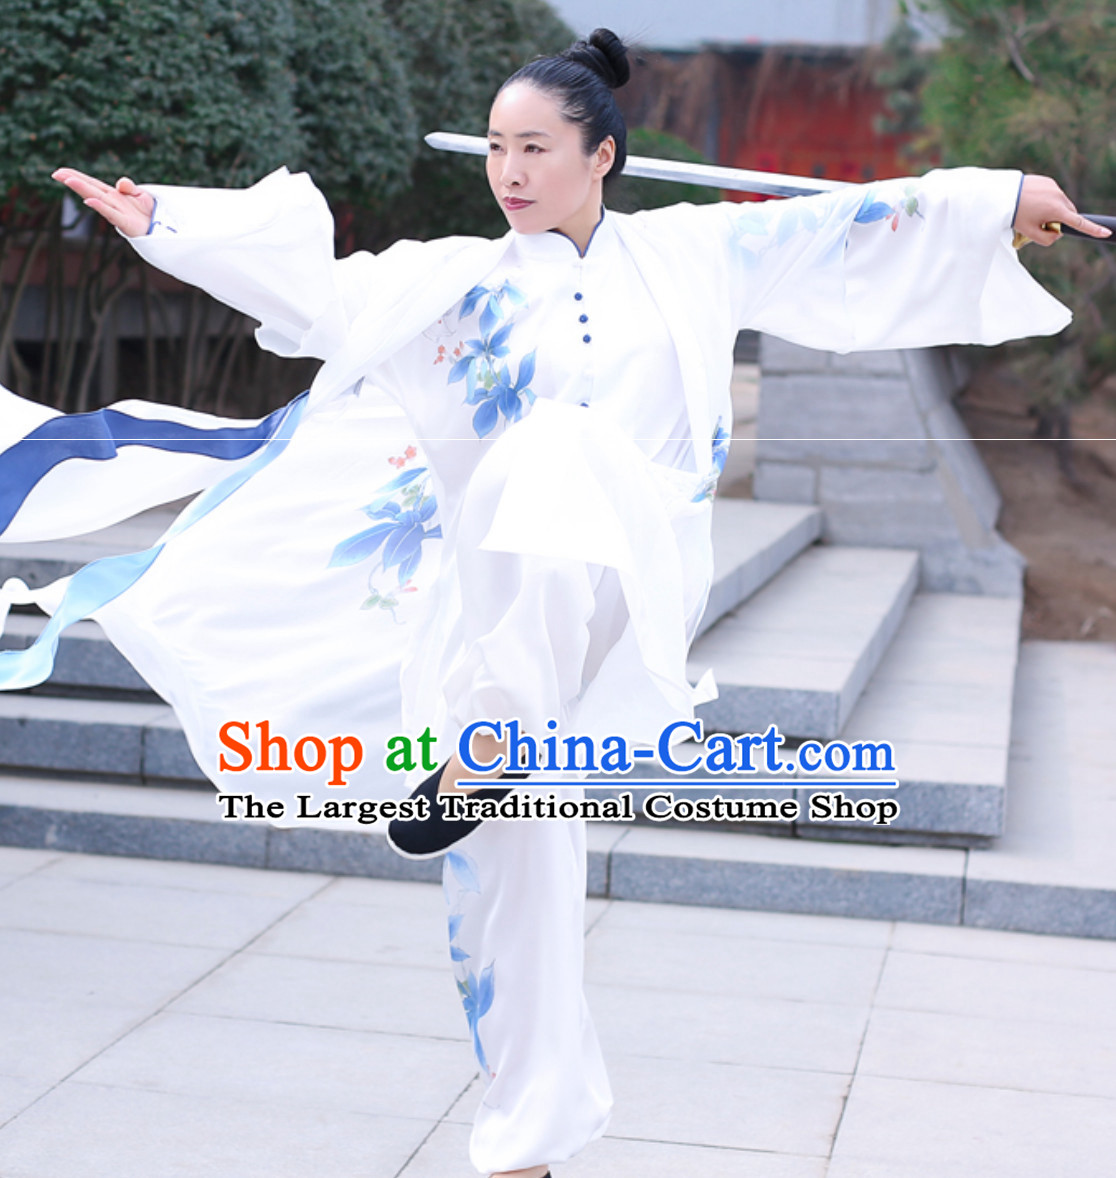 Top Chinese Traditional Competition Championship Tai Chi Taiji Kung Fu Wing Chun Kungfu Tai Ji Sword Gong Fu Master Stage Performance Suits Clothes Complete Set